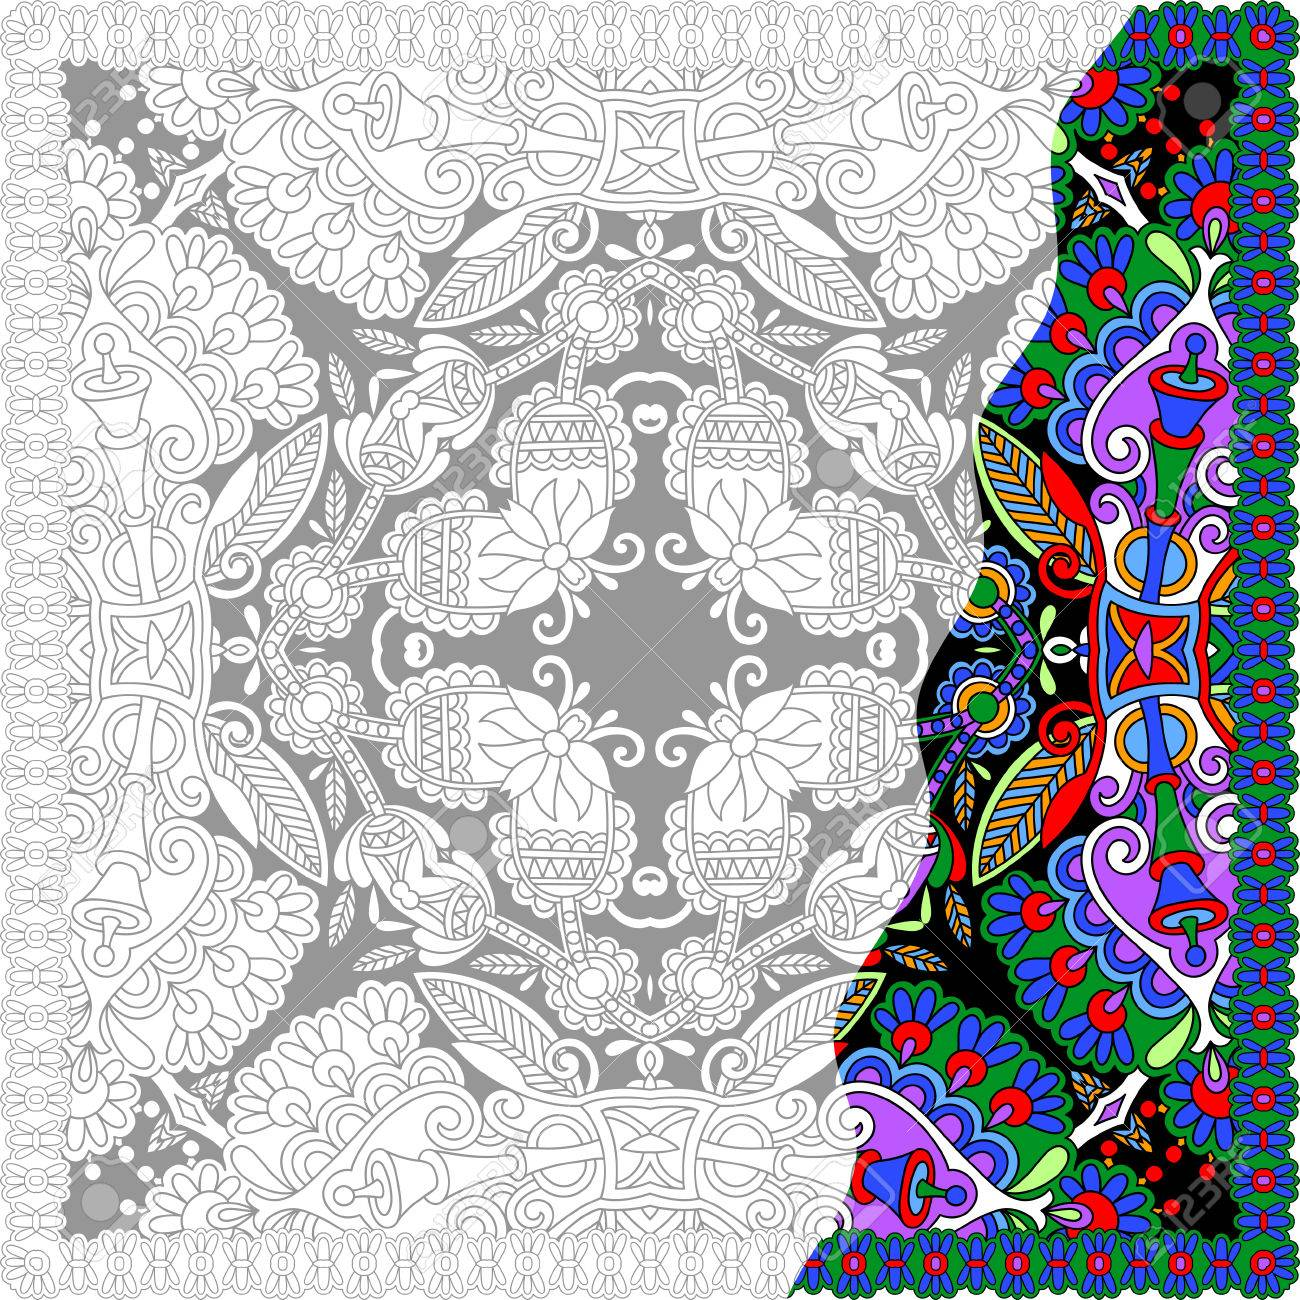 phil lewis art coloring books for adults : Vector Unique Coloring Book Square Page For Adults Floral Authentic Carpet Design Joy To Older Children And Adult Colorists Who Like Line Art And